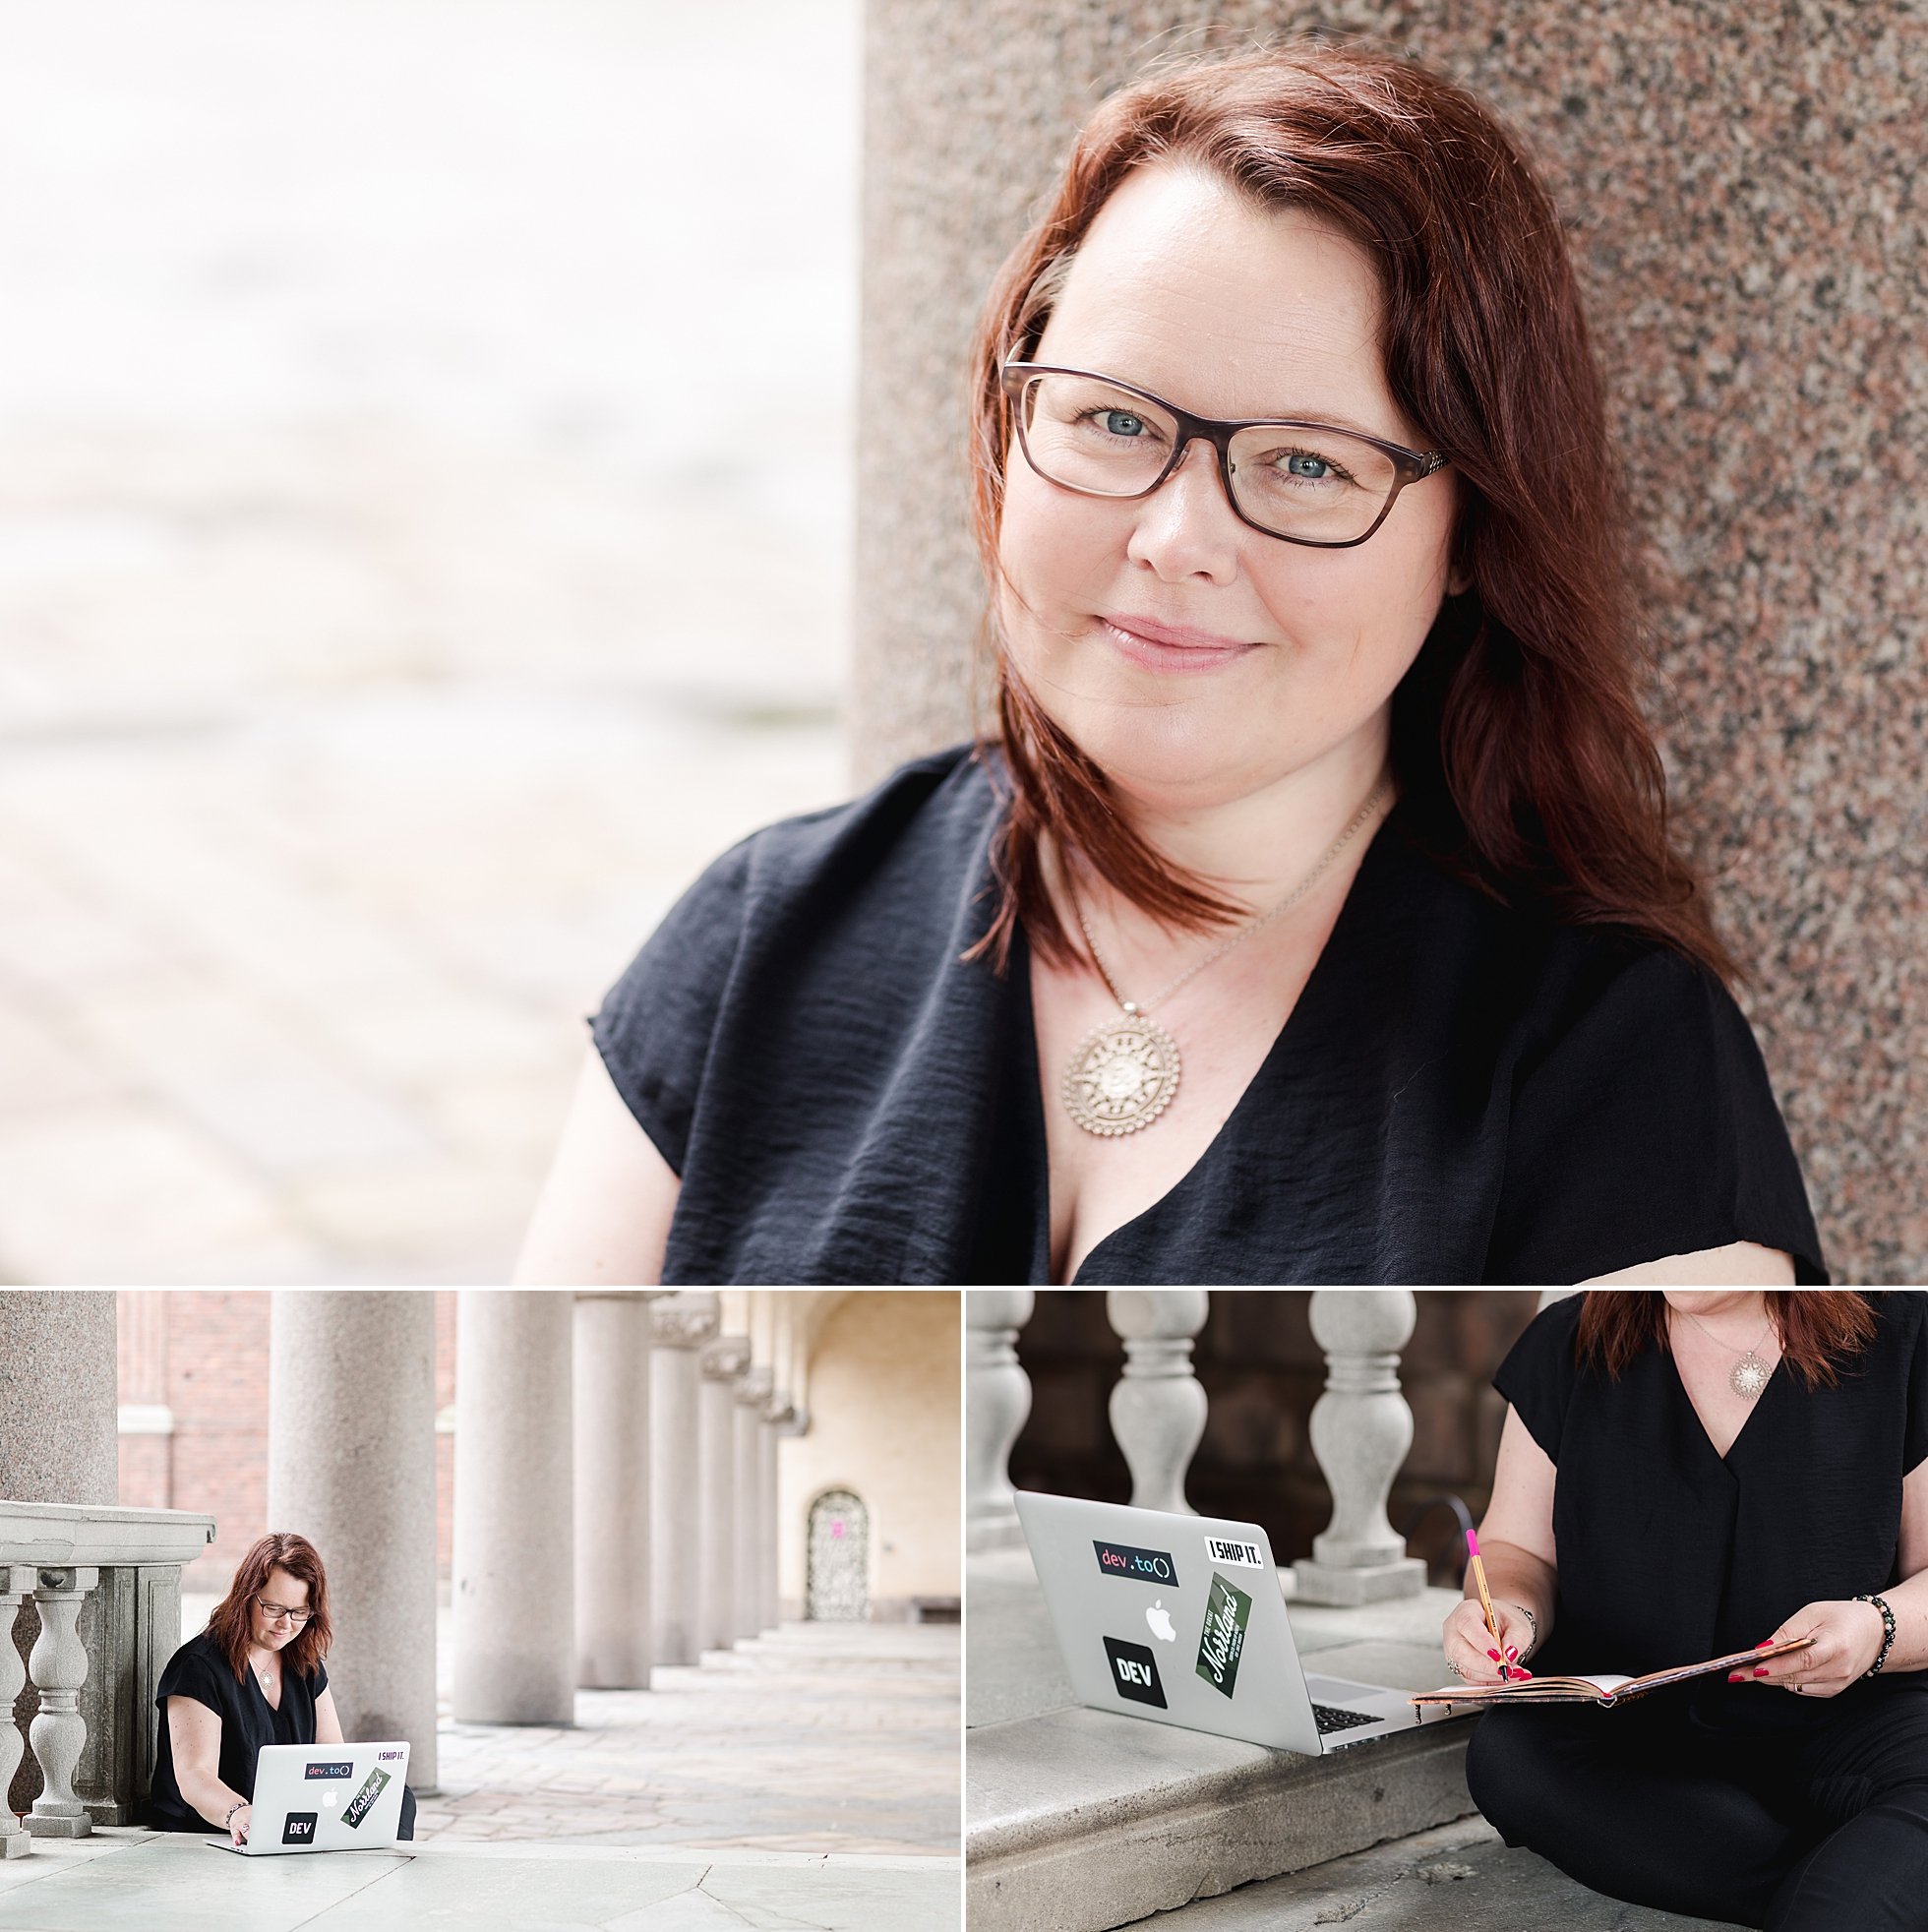 A photo collage of natural portraits of a female entrepreneur